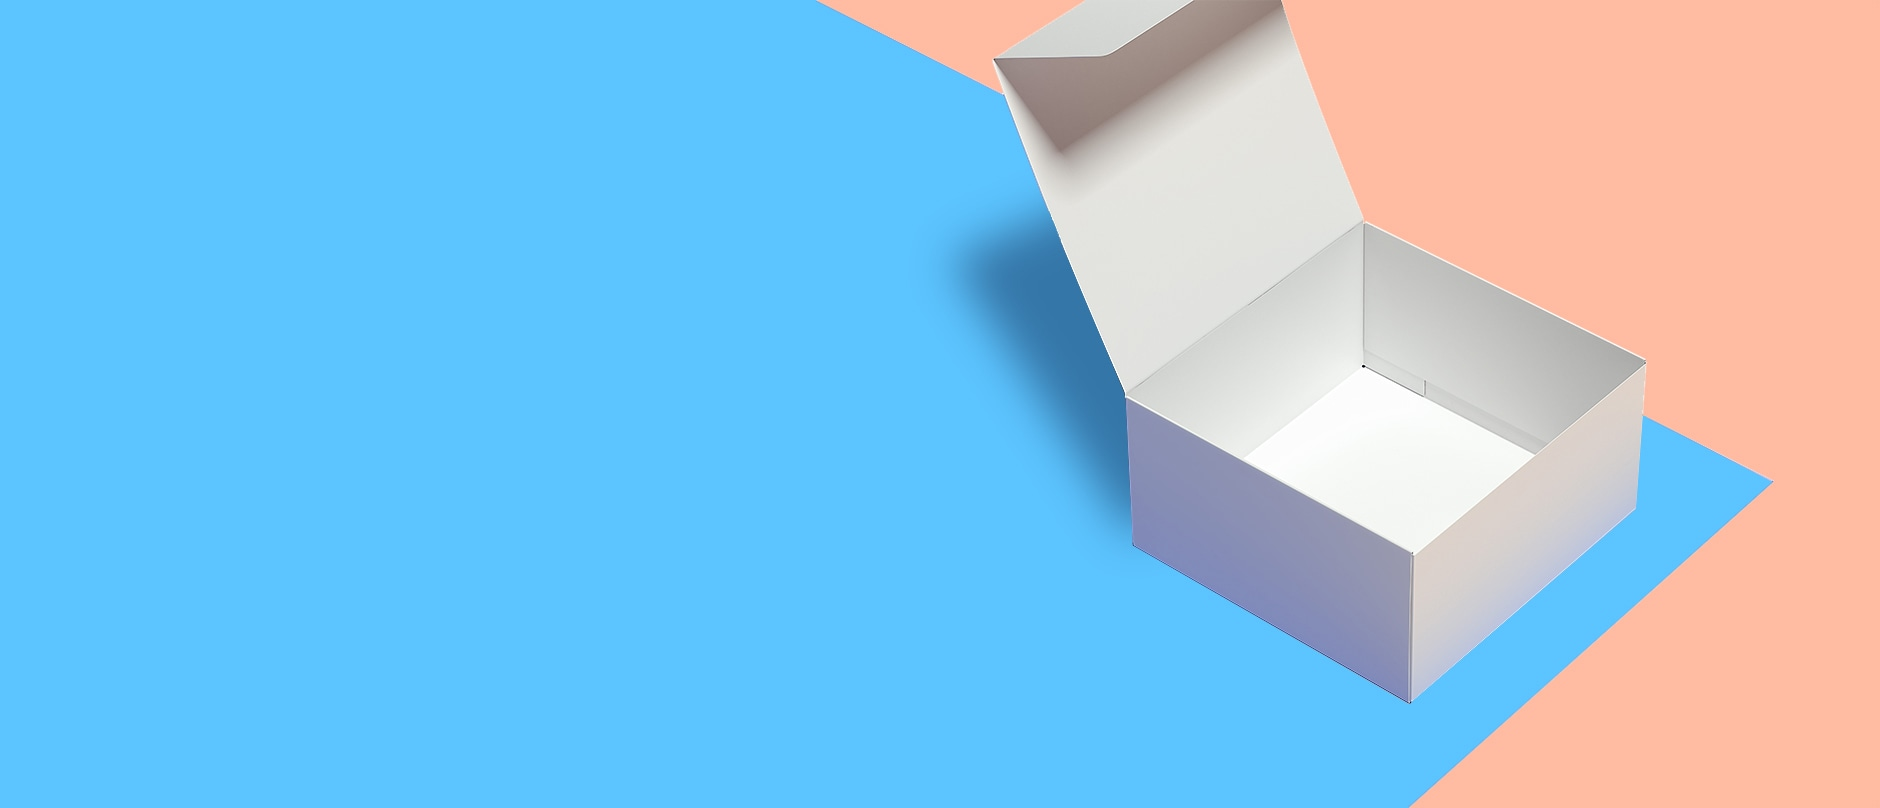 open white box on blue and peach background